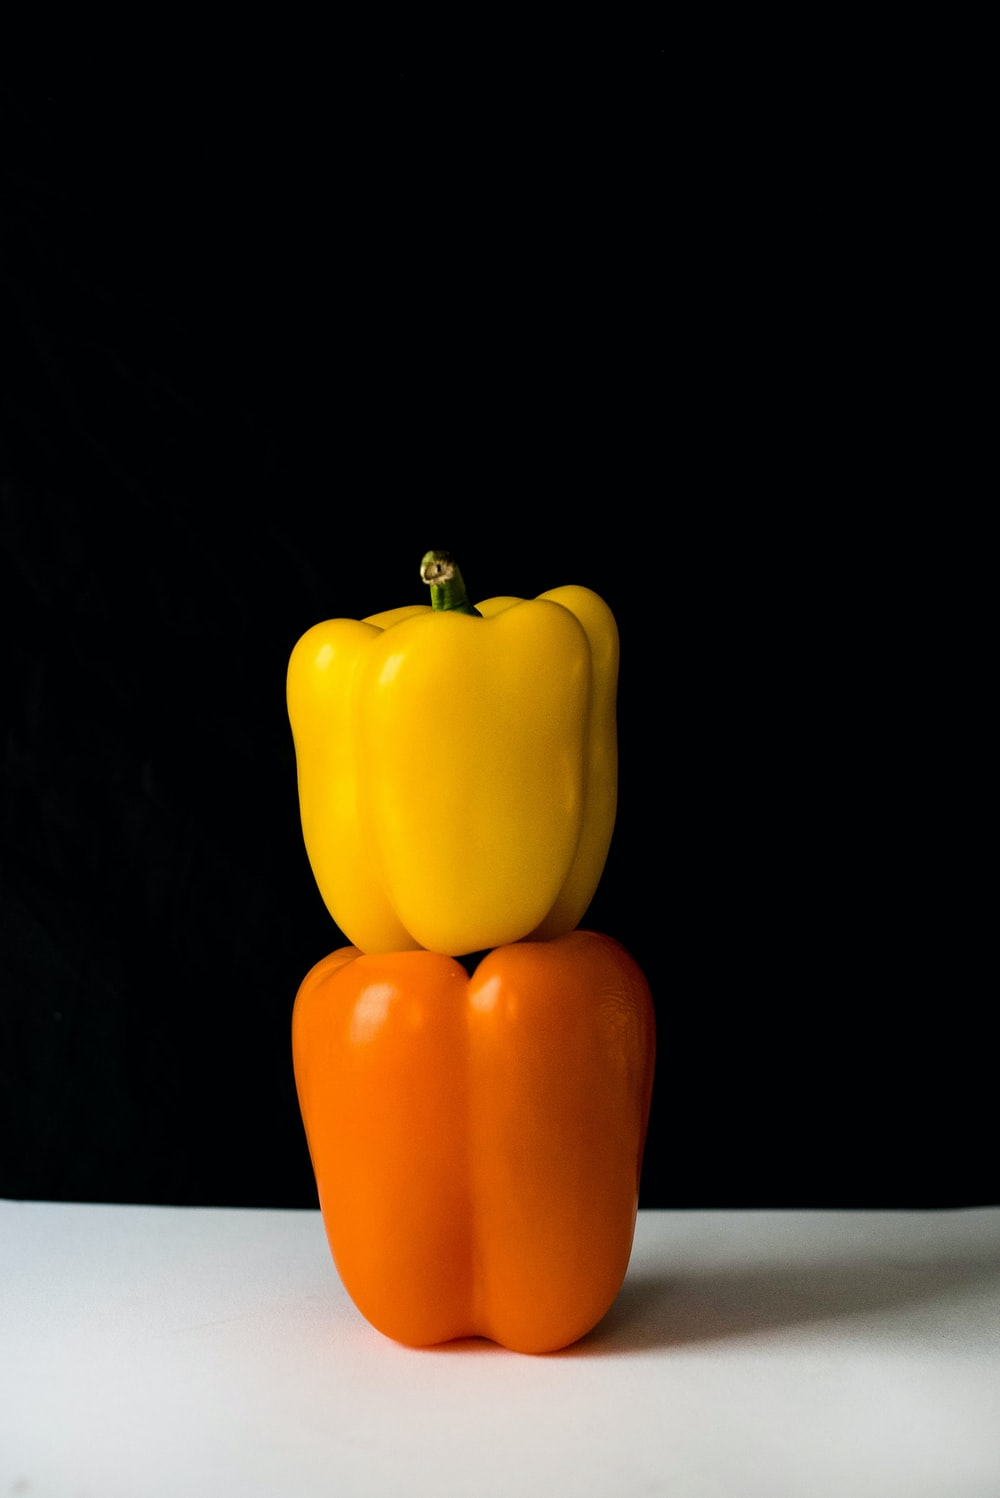 two yellow and orange bell peppers on white surface